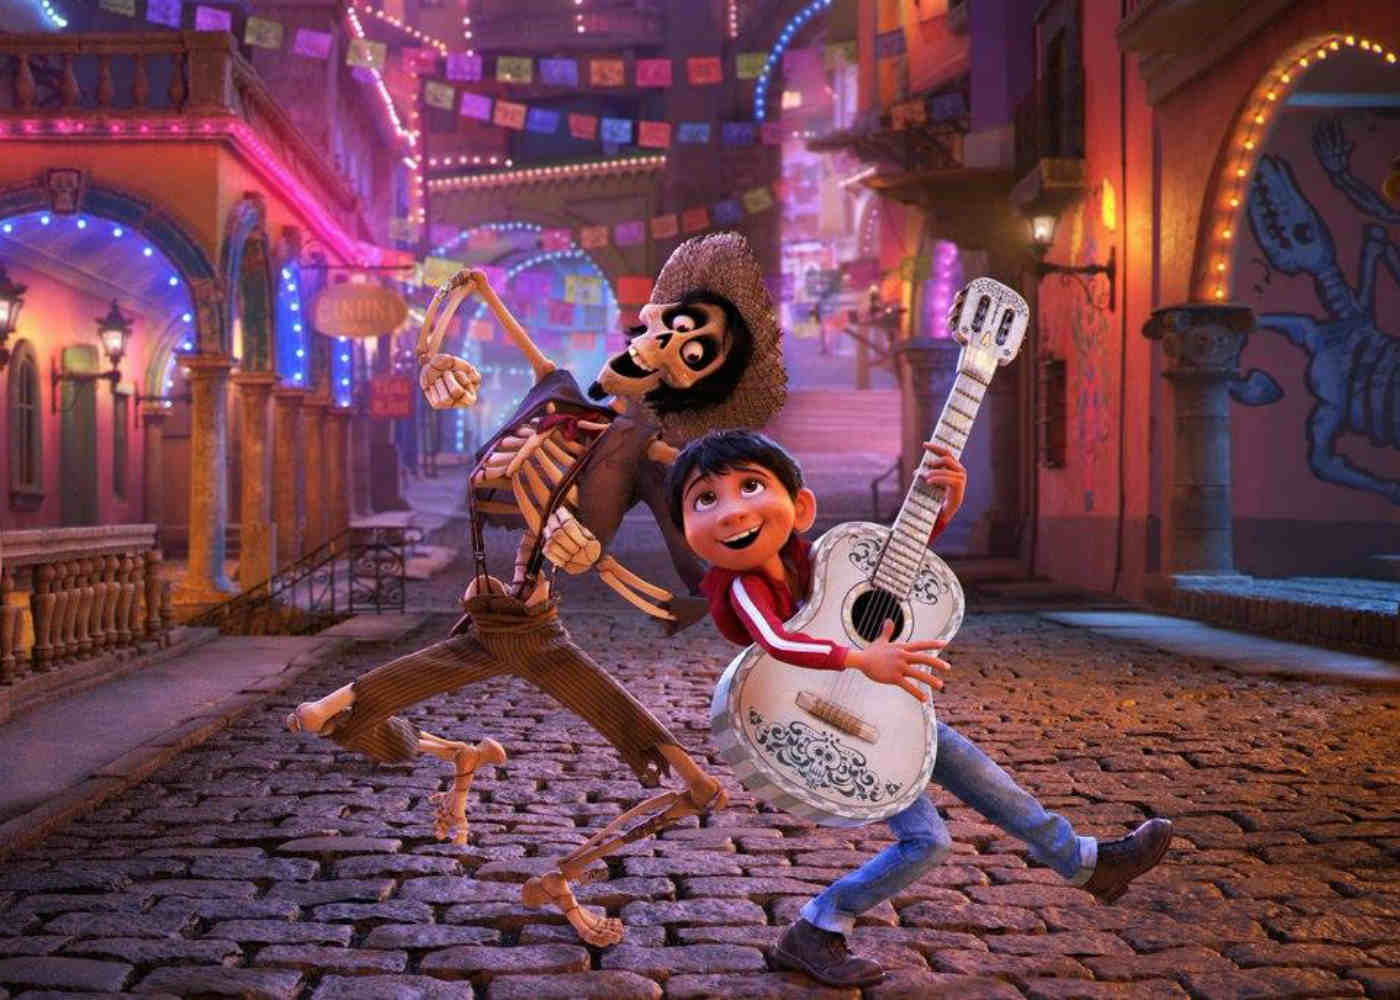 'Find Your Voice' – Disney Release Trailer and Poster for Pixar's Coco